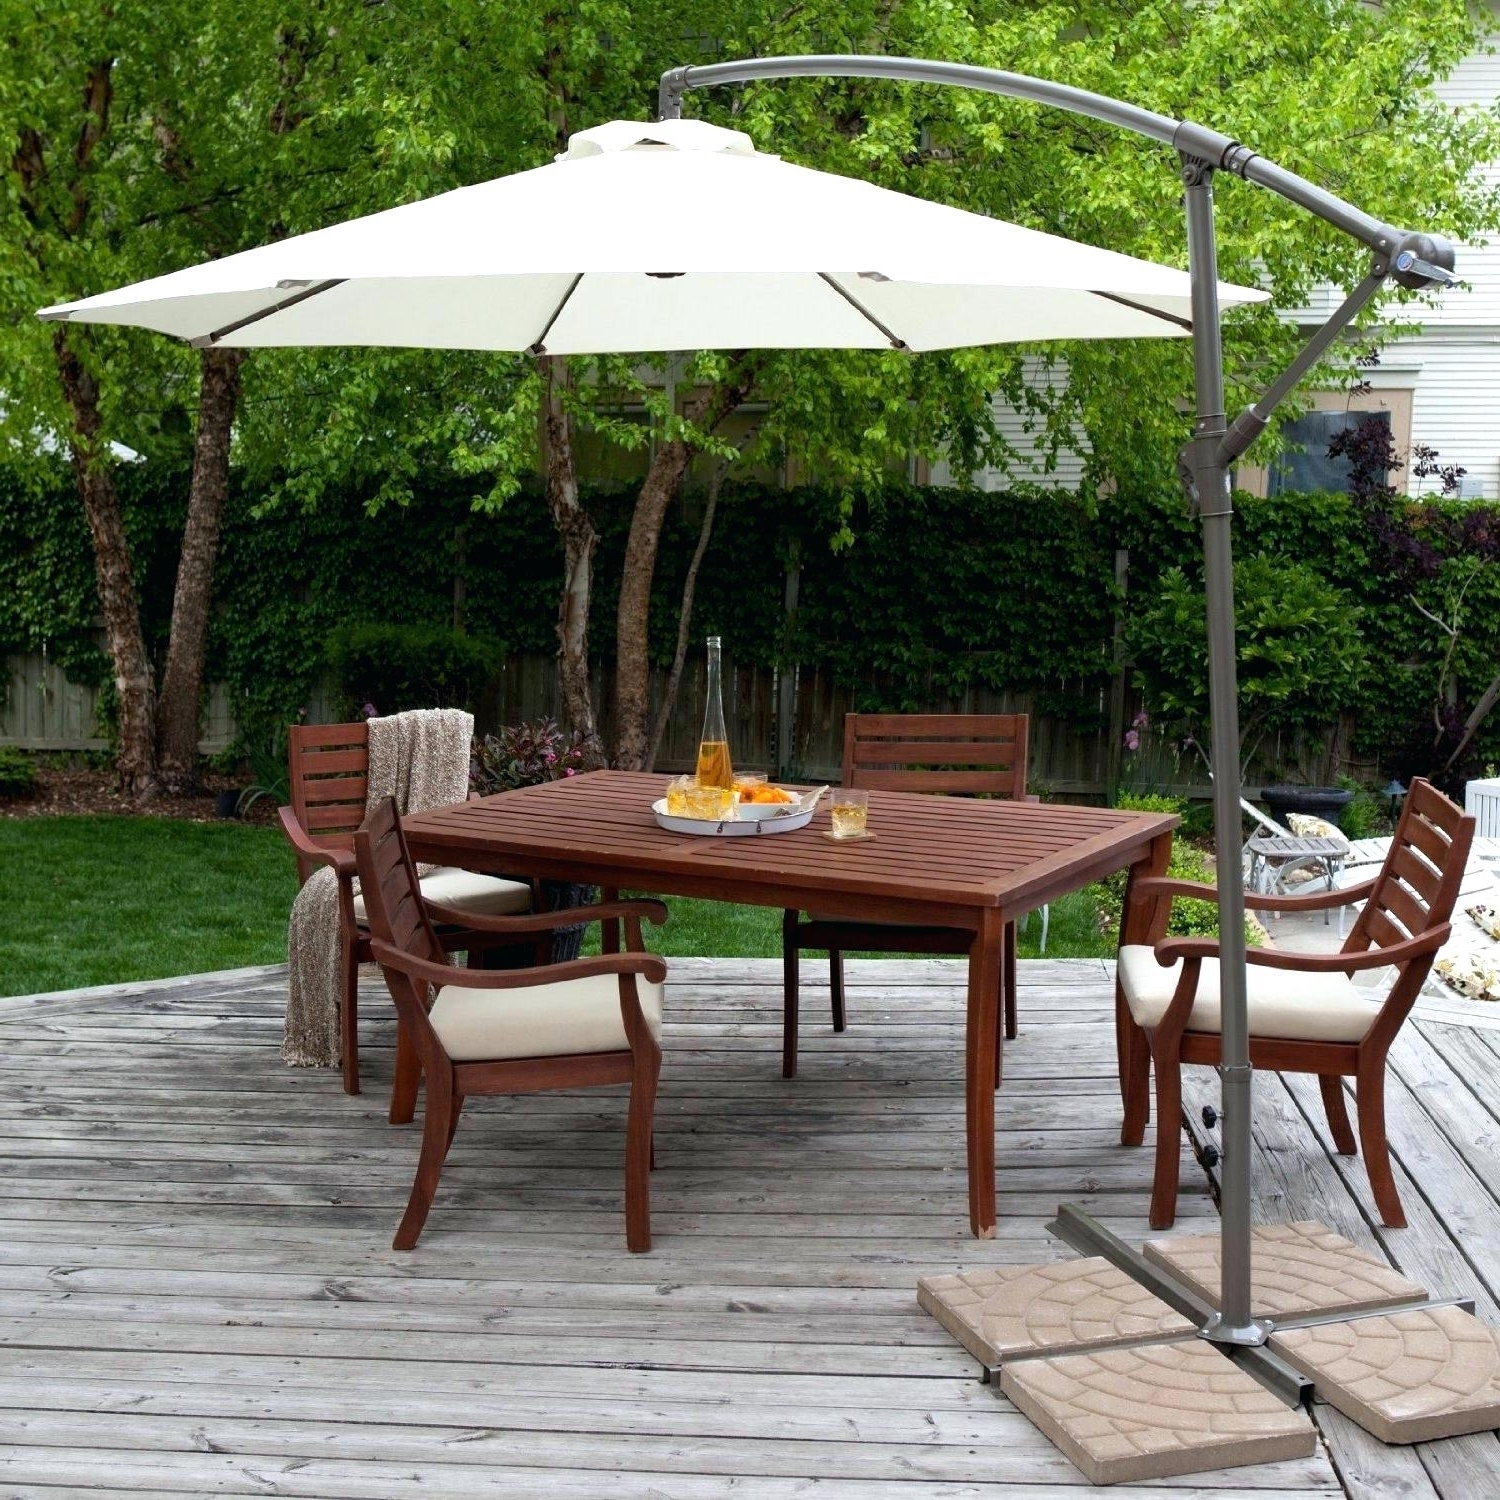 Large Patio Umbrella Cajpg Umbrellas Costco Uk Cover Intended For Most Recently Released Patio Umbrellas From Costco (View 5 of 20)